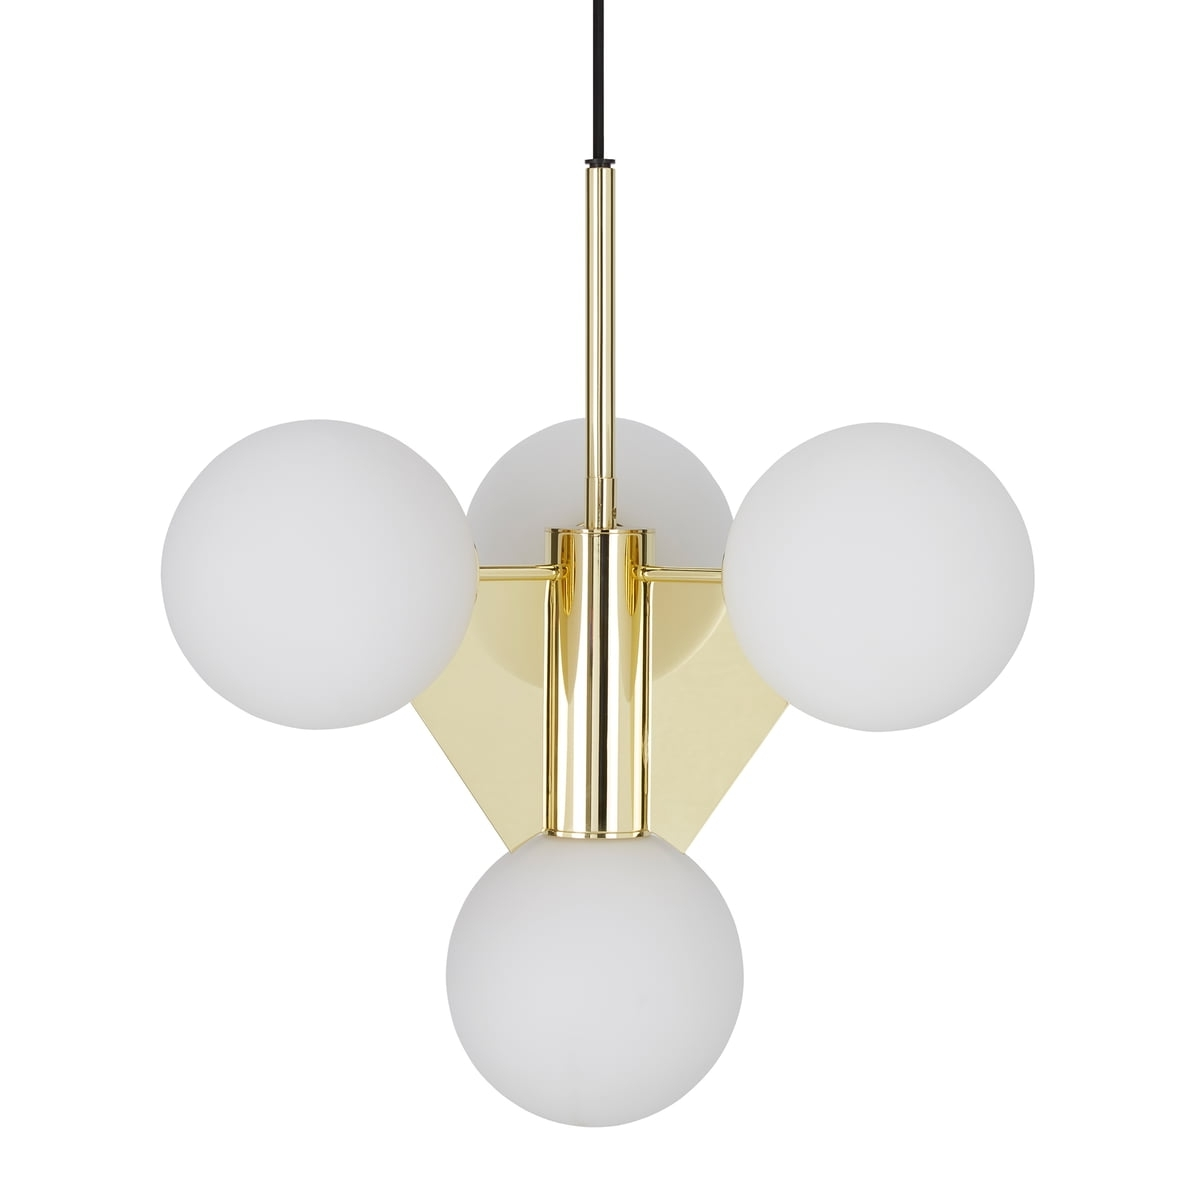 Newest Short Chandelier Lights Pertaining To Plane Short Chandeliertom Dixon (View 13 of 20)